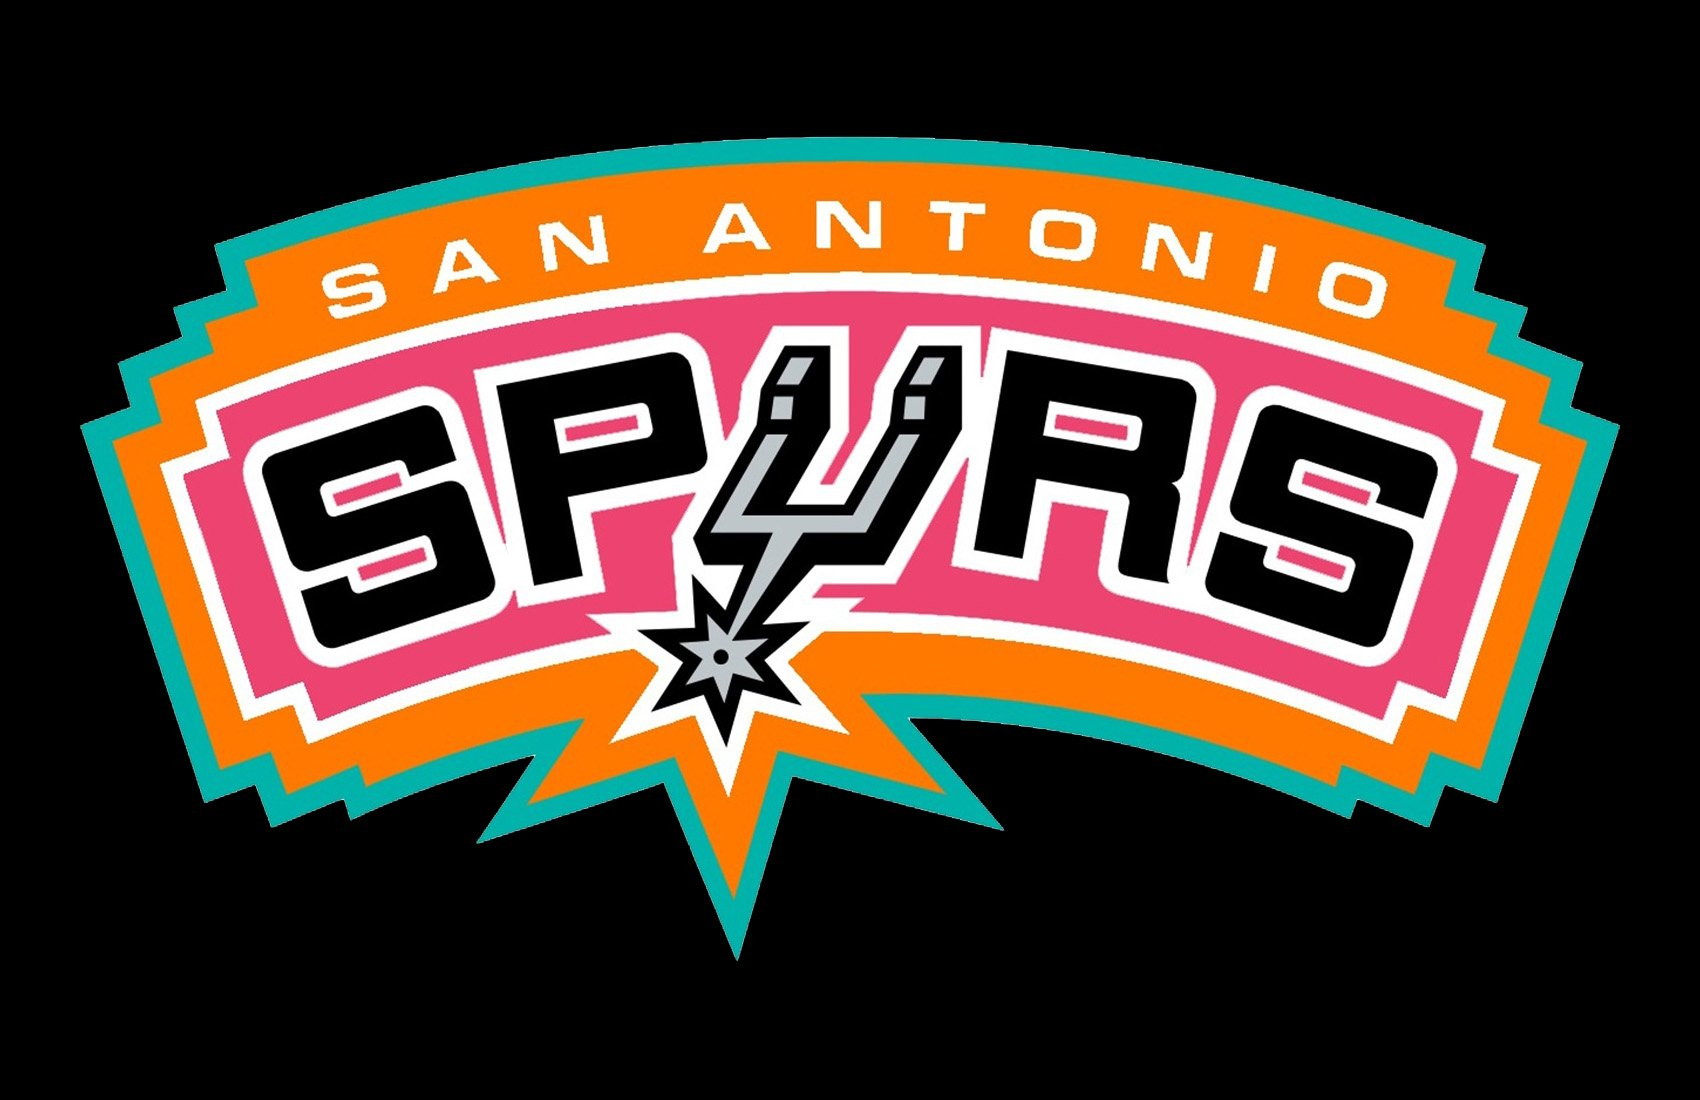 In 1973 1976 The Team Changed Its Owners Moved To San Antonio Joined NBA And Was Renamed It Then That Iconic Spur Design Emphasizing